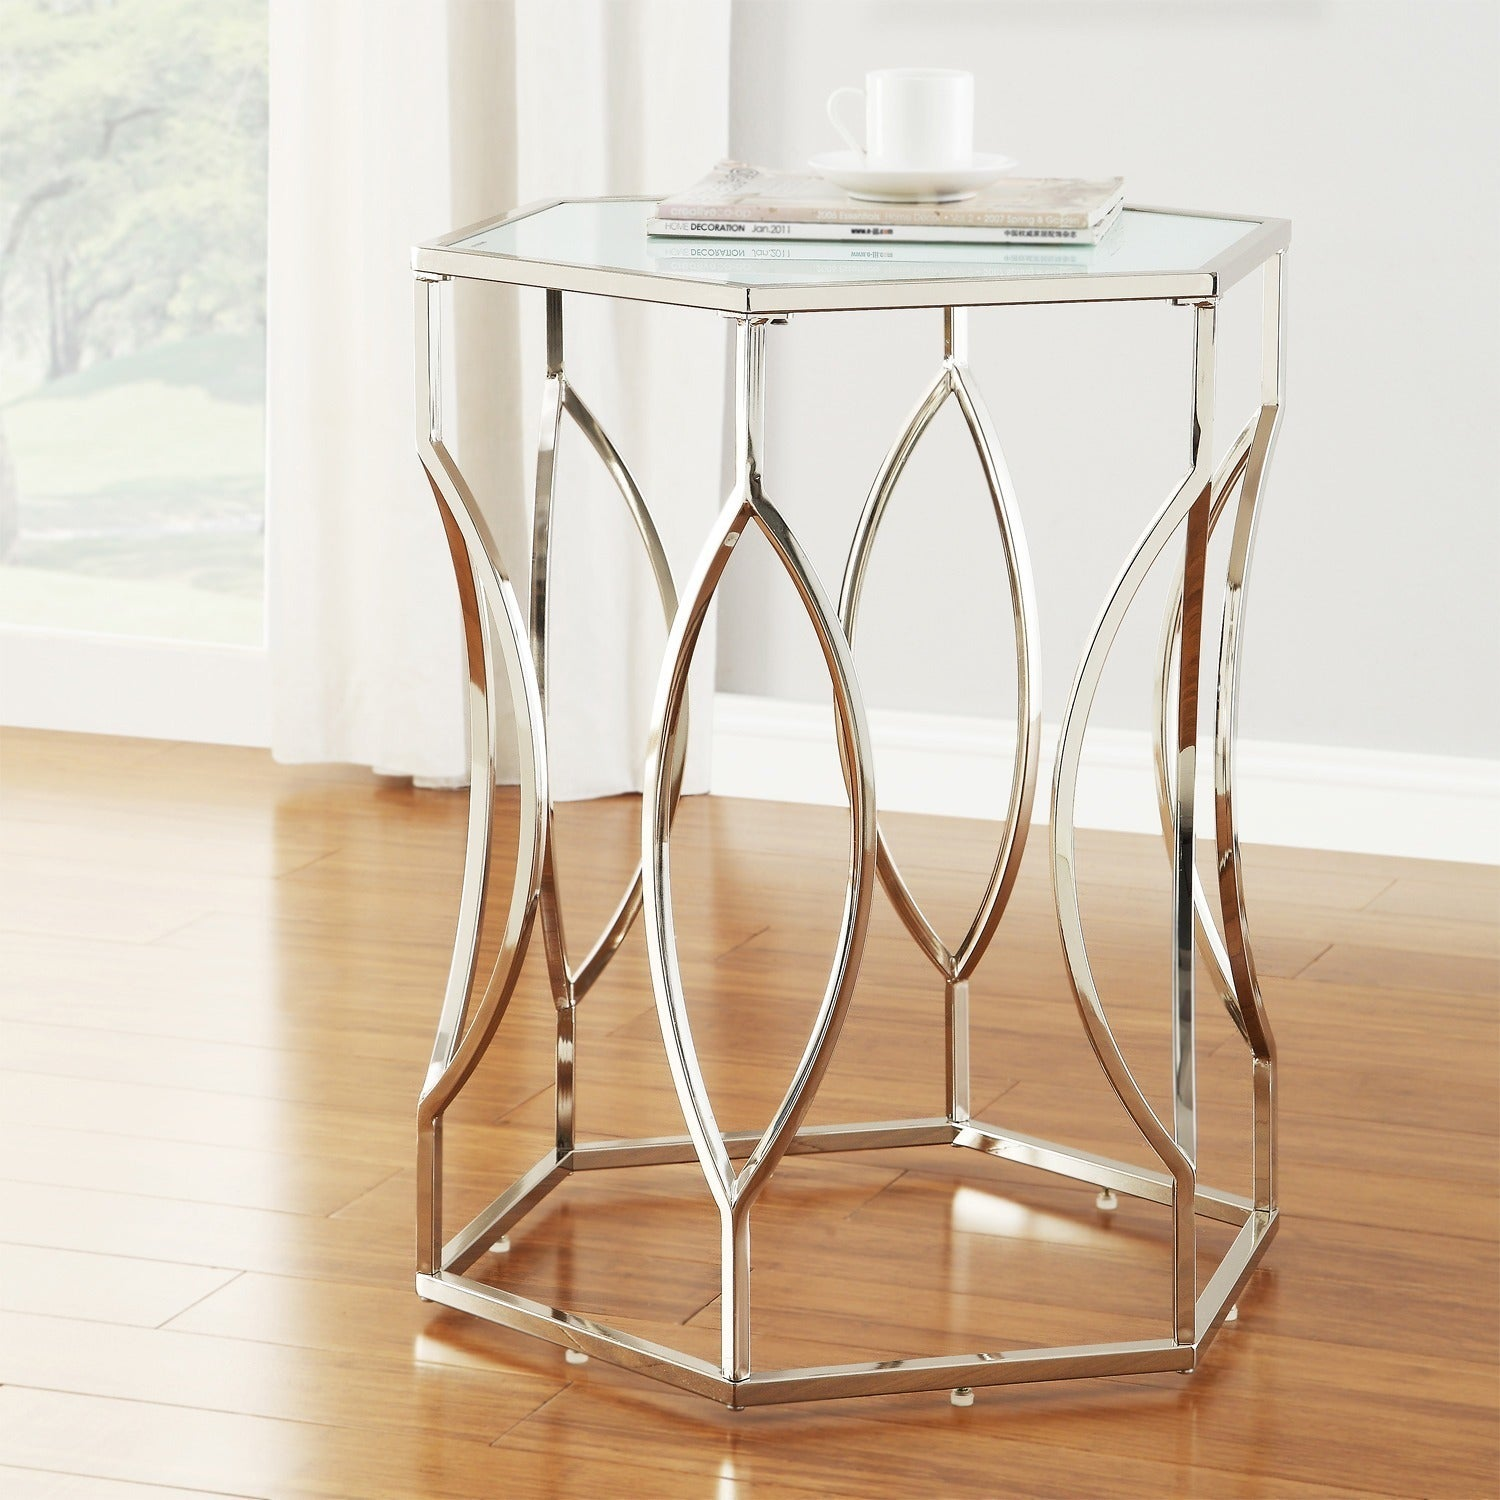 Davlin Hexagonal Metal Frosted Gl Accent End Table By Inspire Q Bold Free Shipping Today 8140965